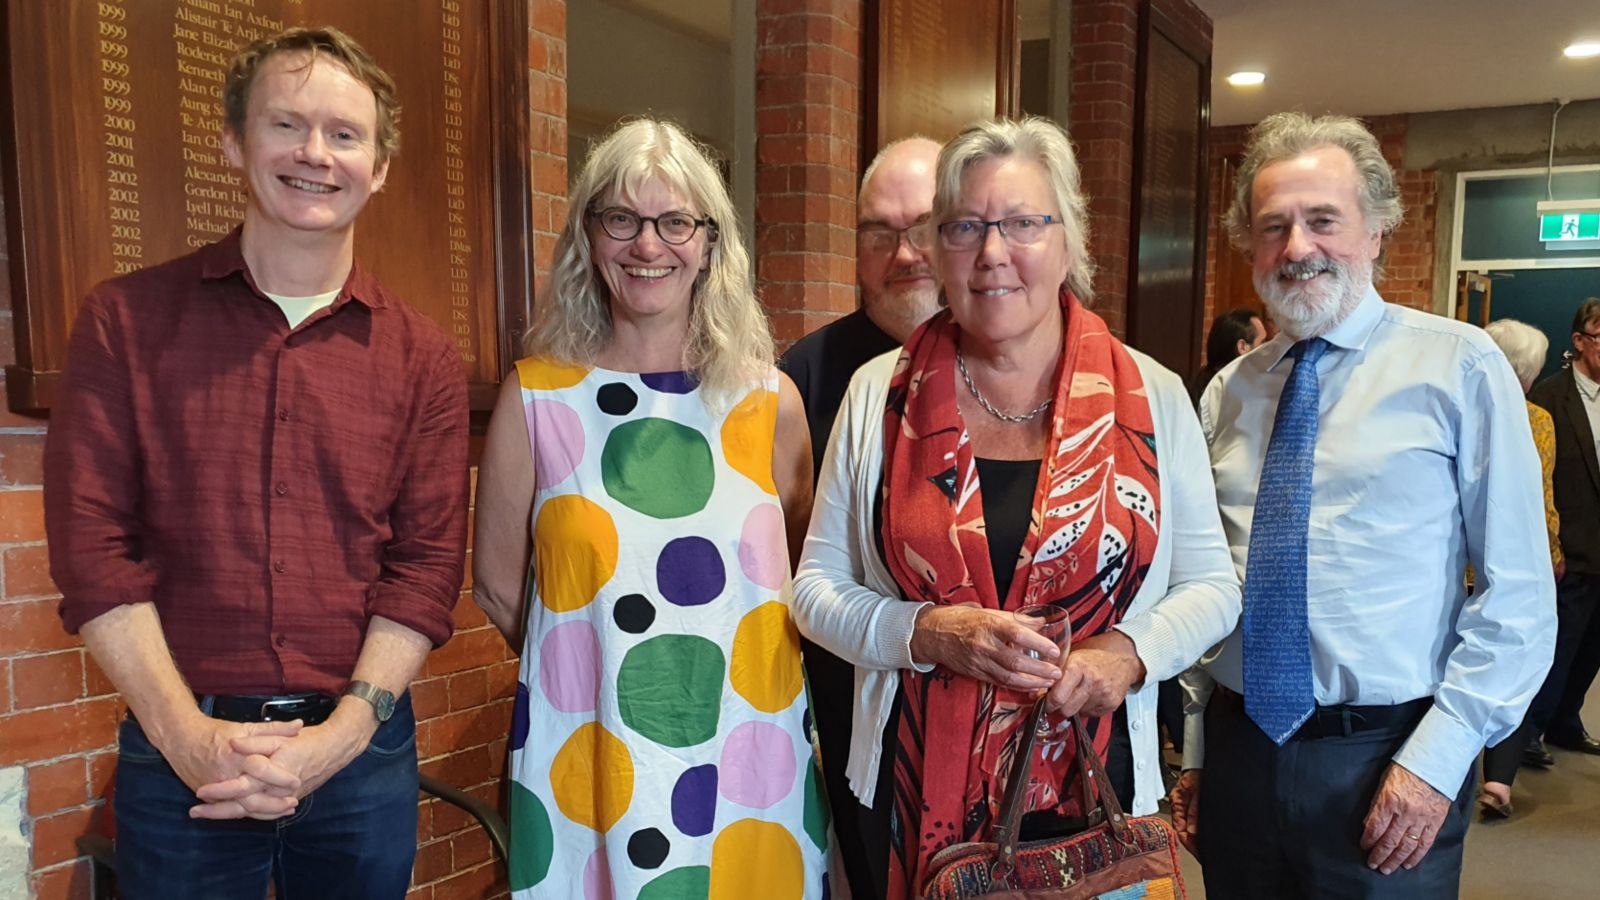 University staff gathered to farewell Emeritus Professor Heidi Thomson in the Hunter Common Room earlier this year. Pictured L-R: Damien Wilkins, Emeritus Professor Heidi Thomson, Geoff Miles, Emeritus Professor Kathryn Walls and Professor Peter Whiteford.